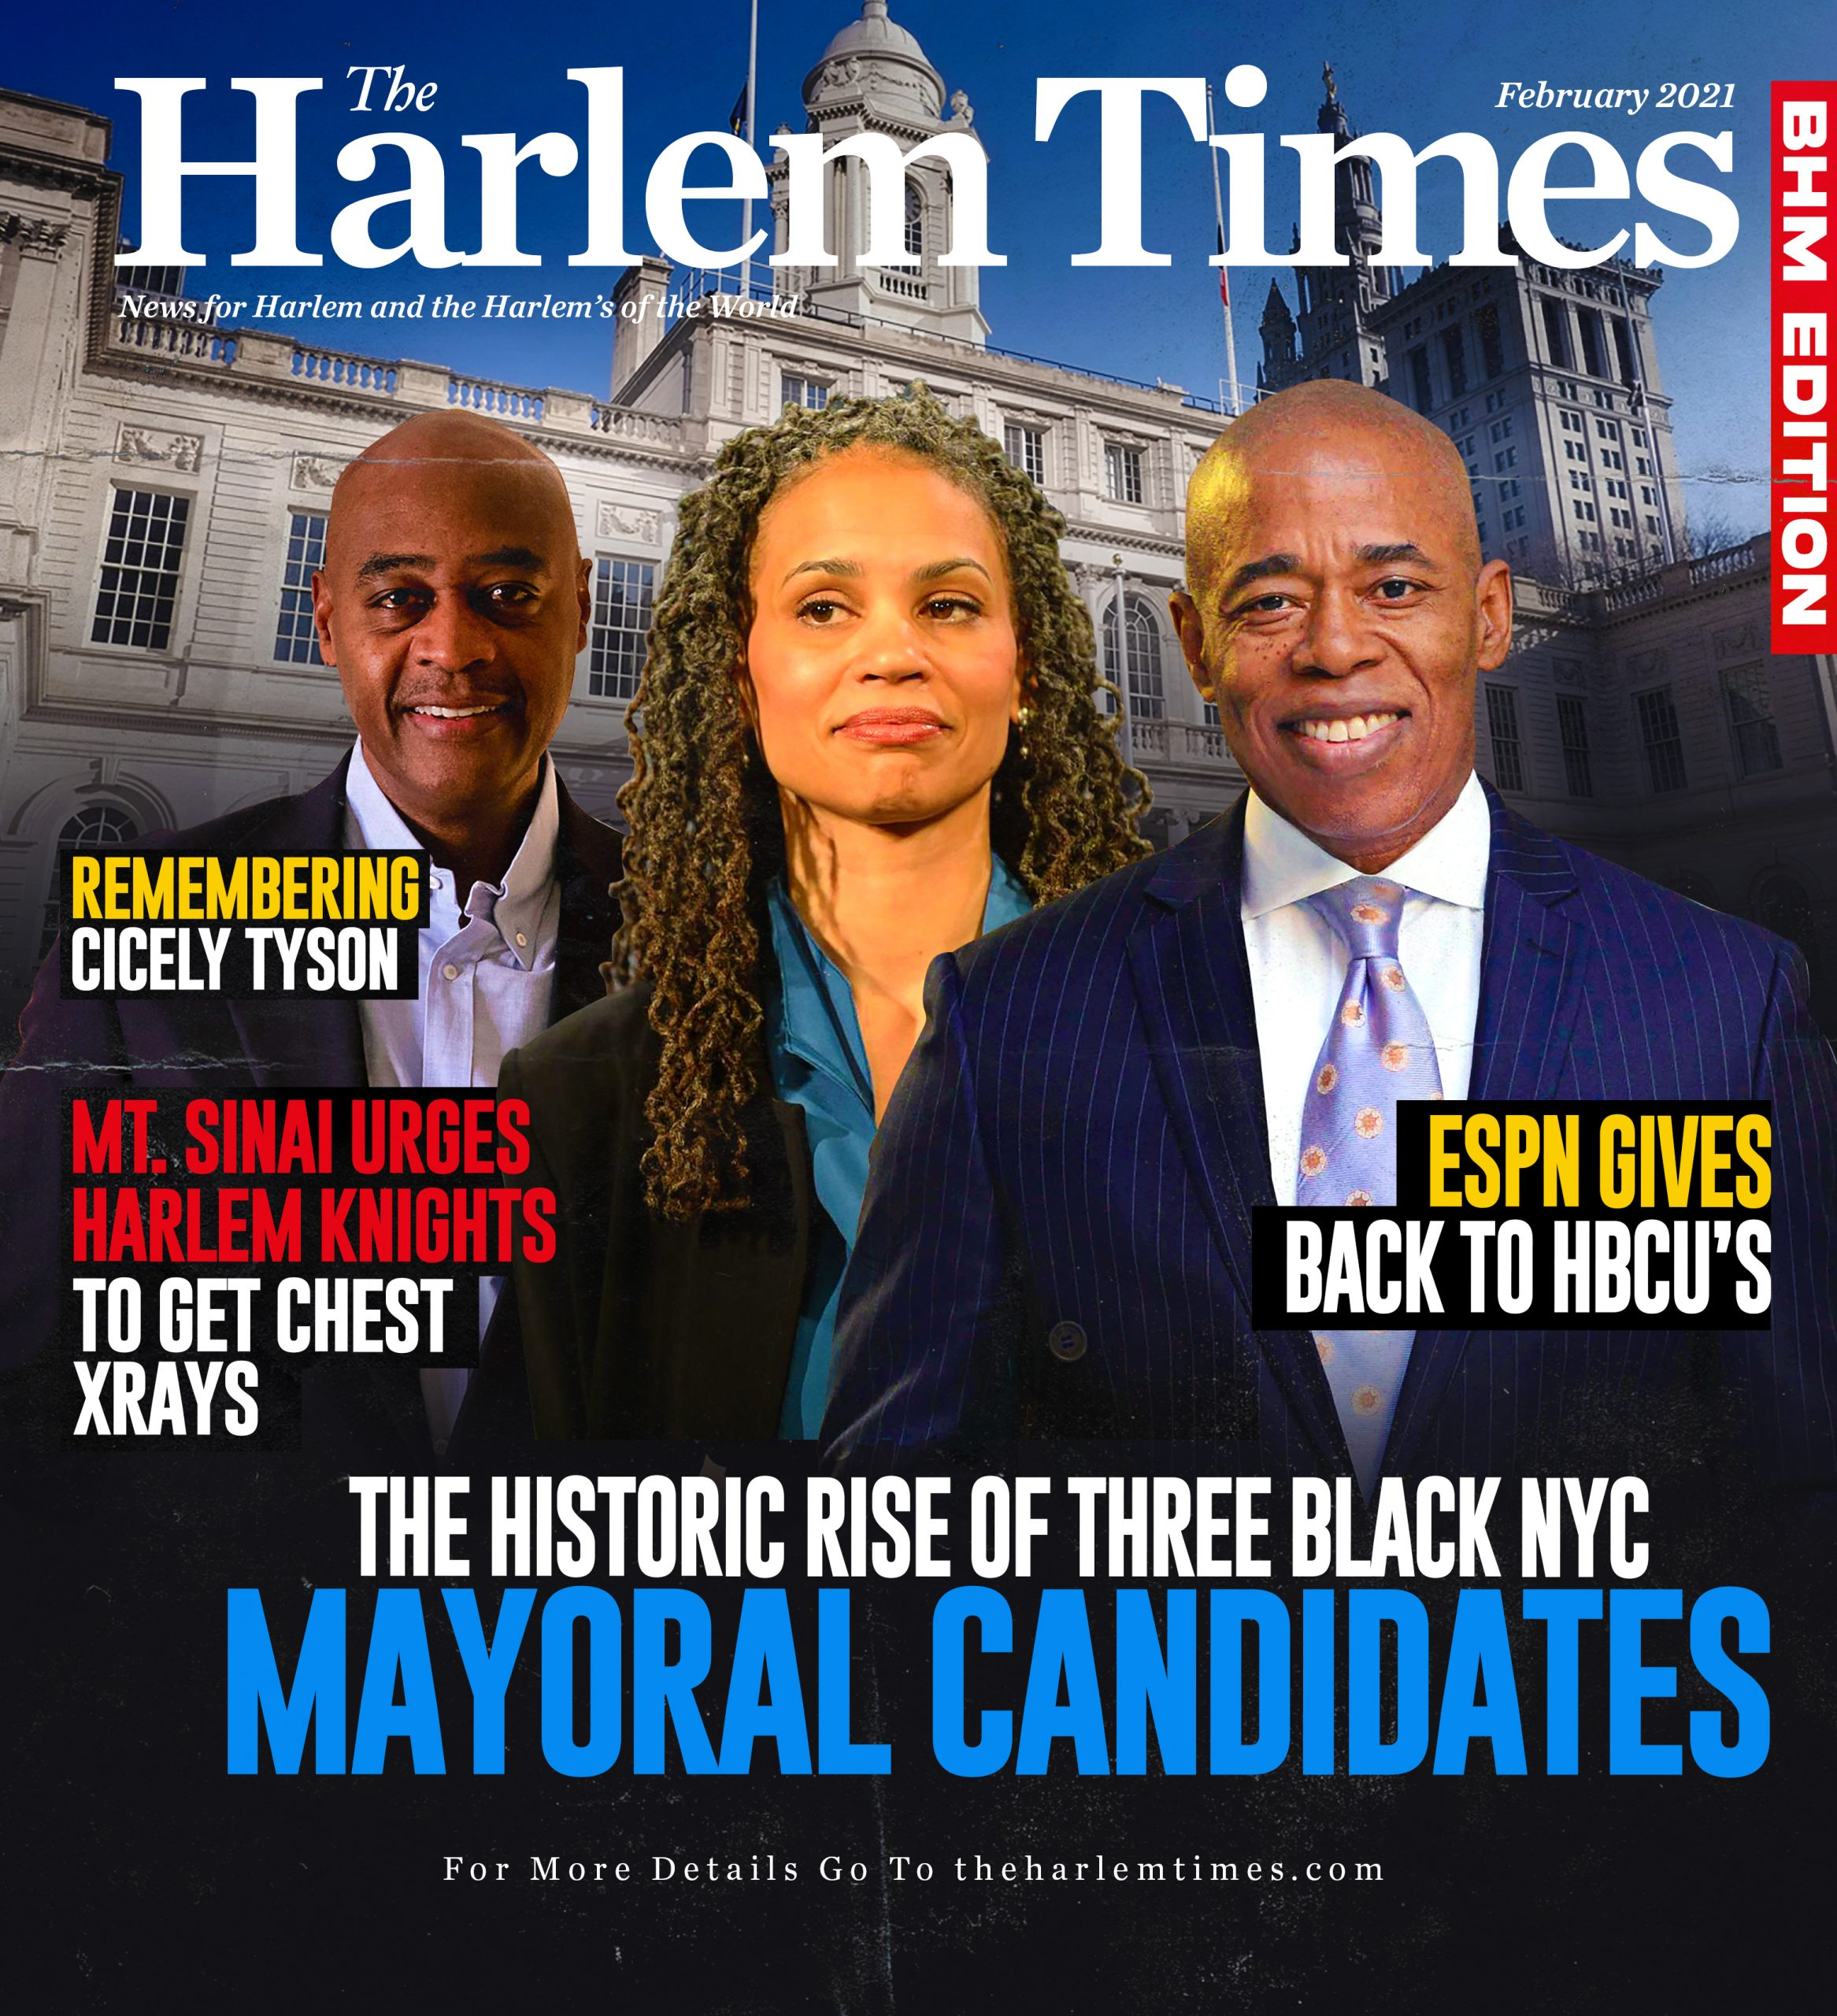 The Historic Rise of Three Black NYC Mayoral Candidates